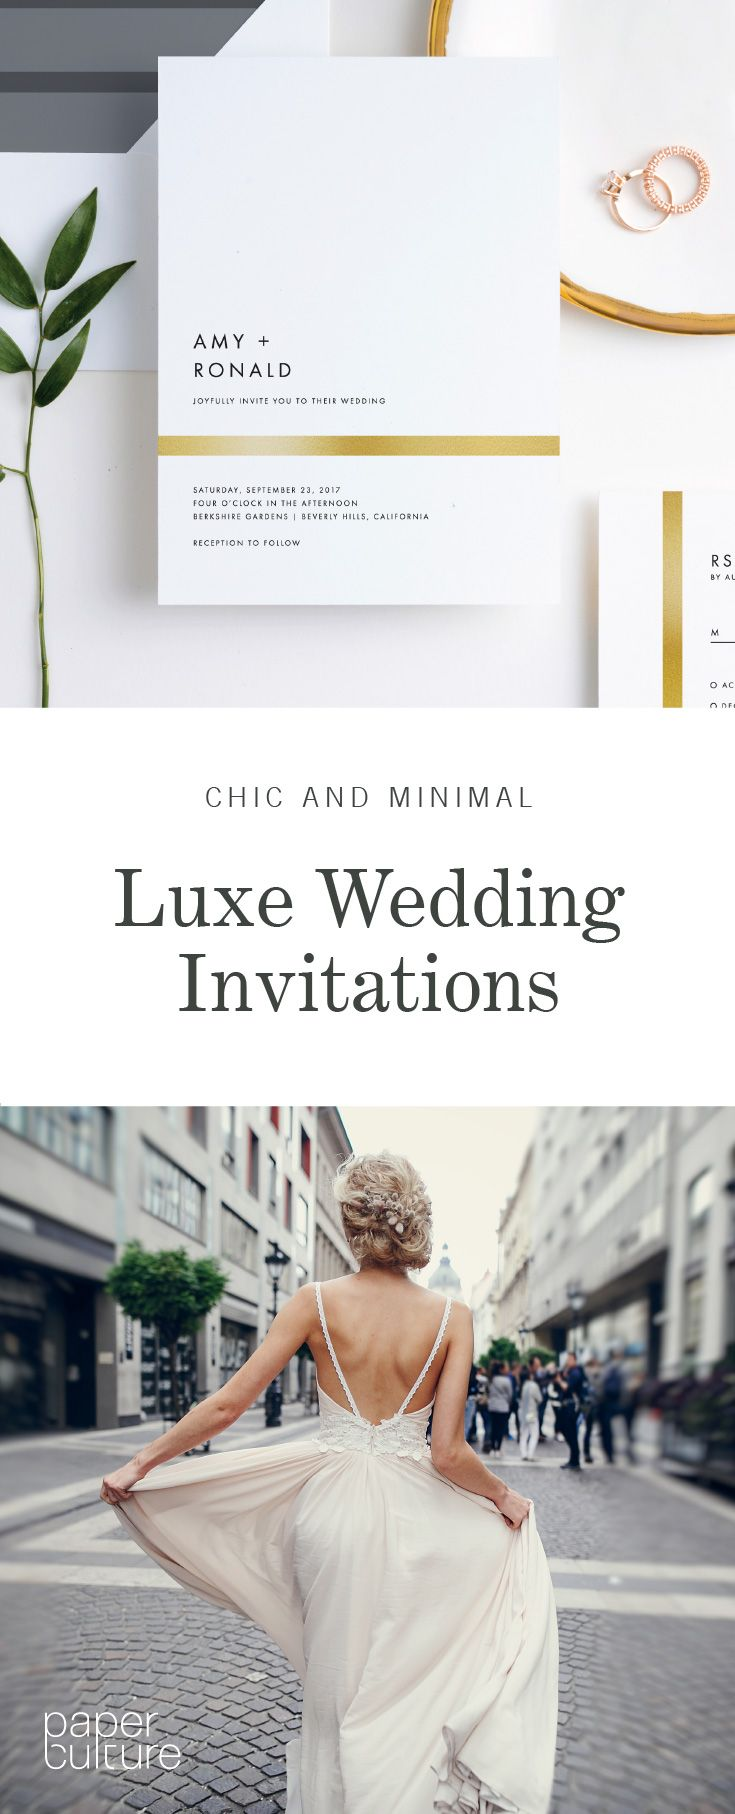 Sign up to receive a $25 off voucher for modern and eco-friendly wedding invitations. Customize colors, layouts plus much more.